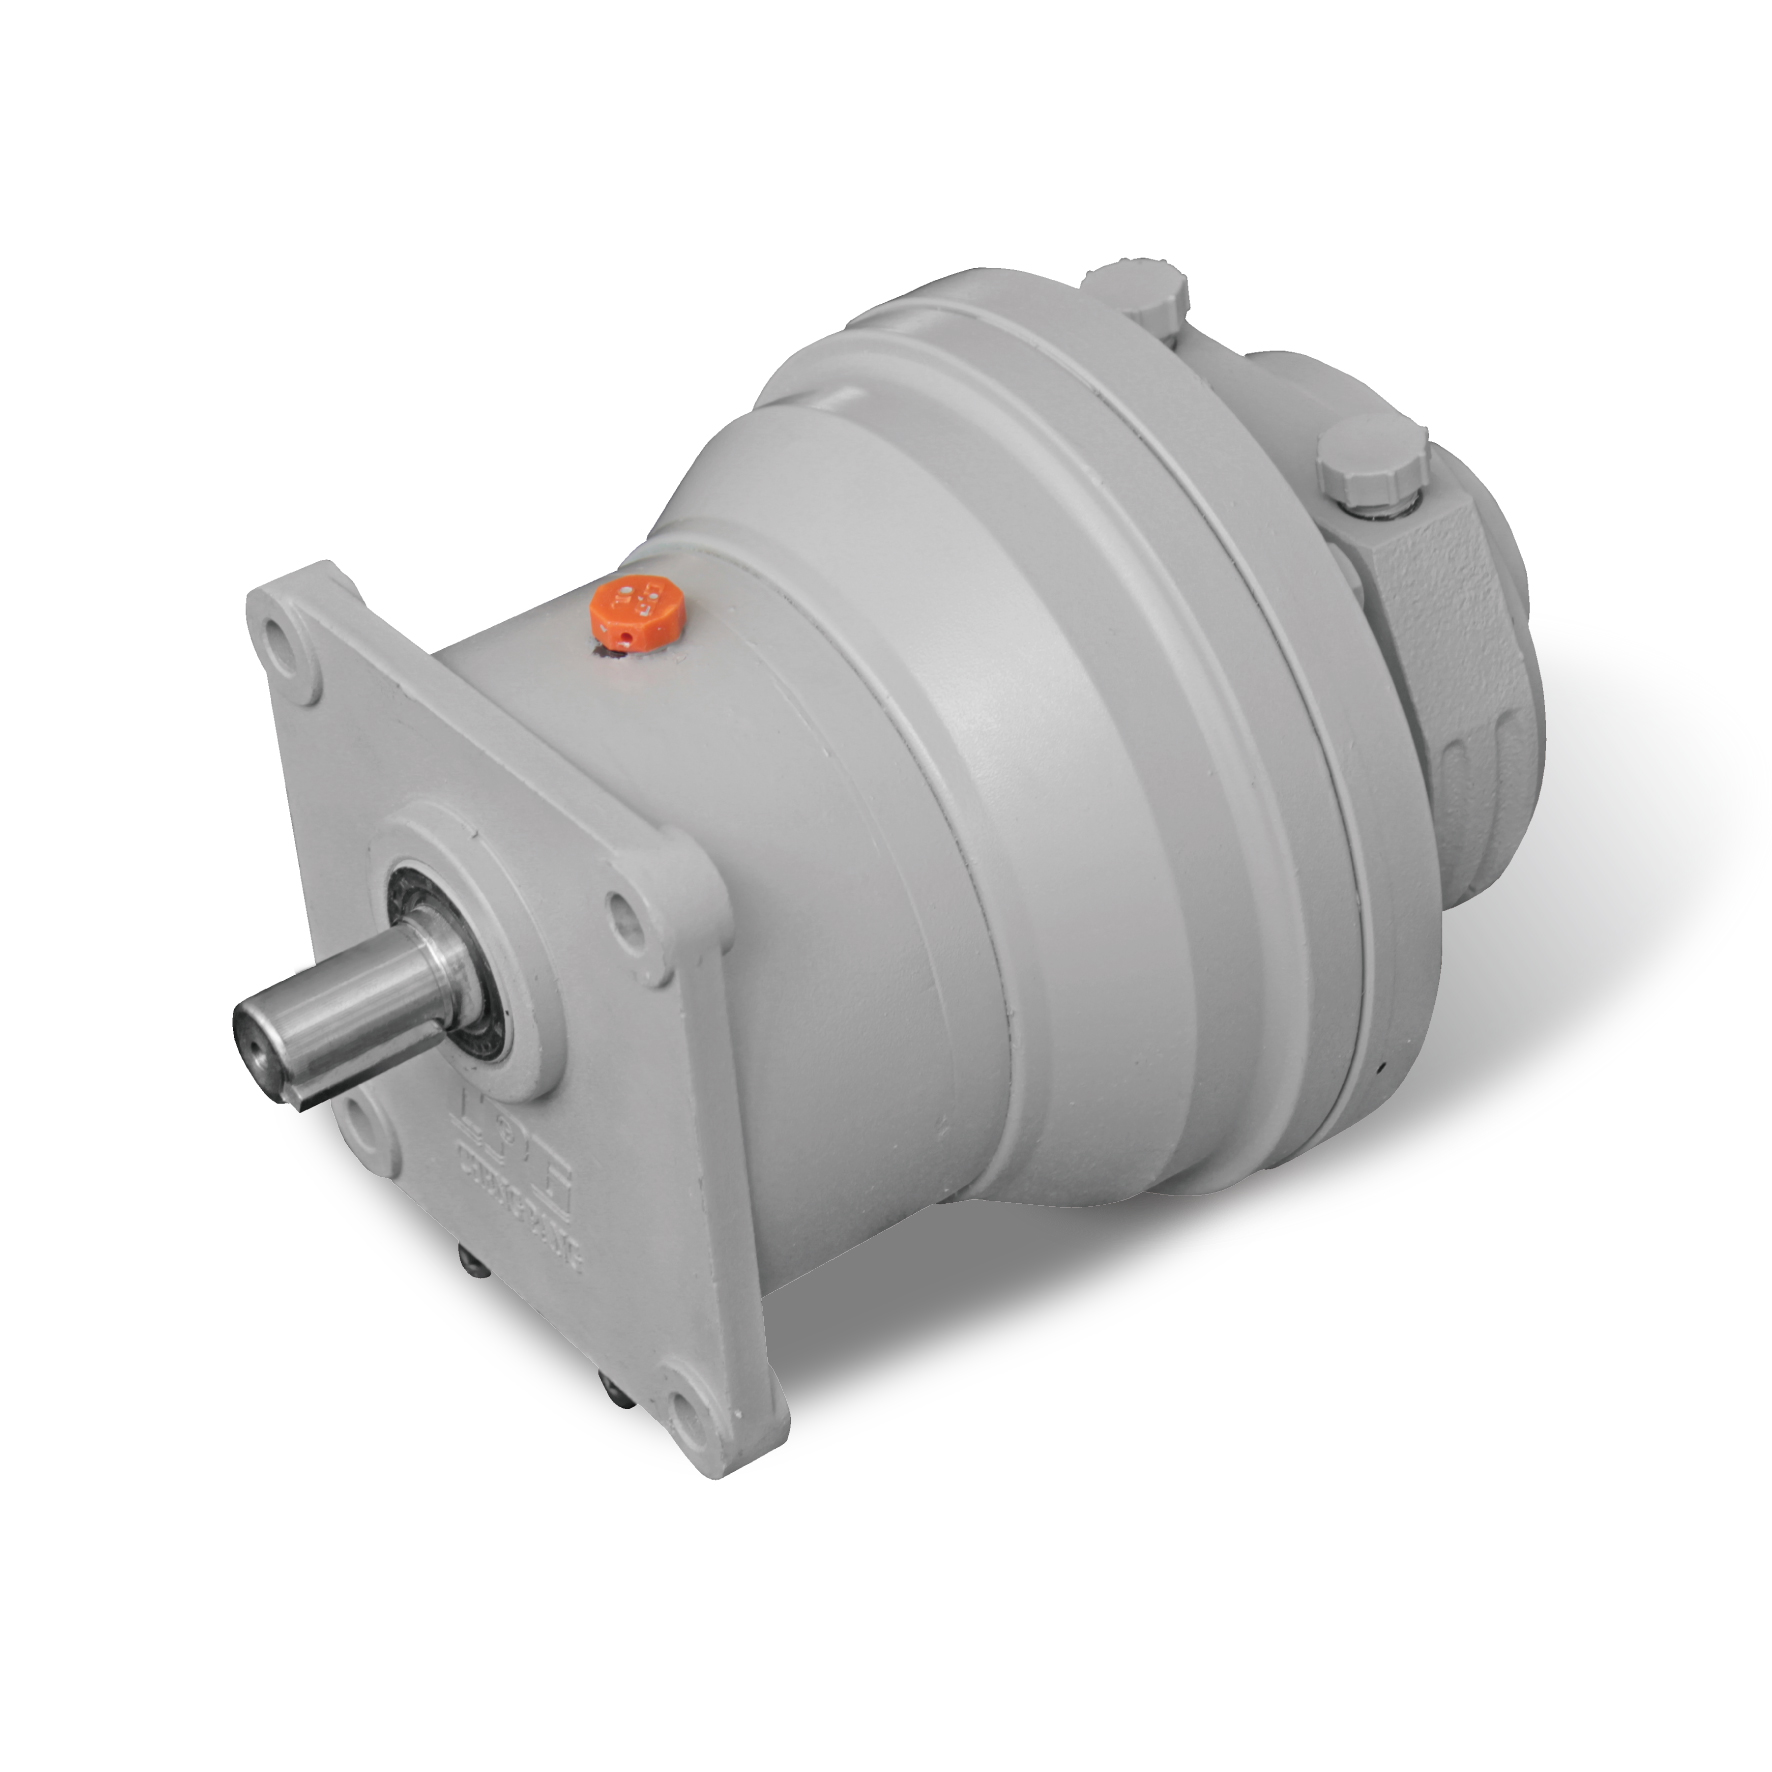 M-M Series Helical Gear (Aluminum Alloy) Motor